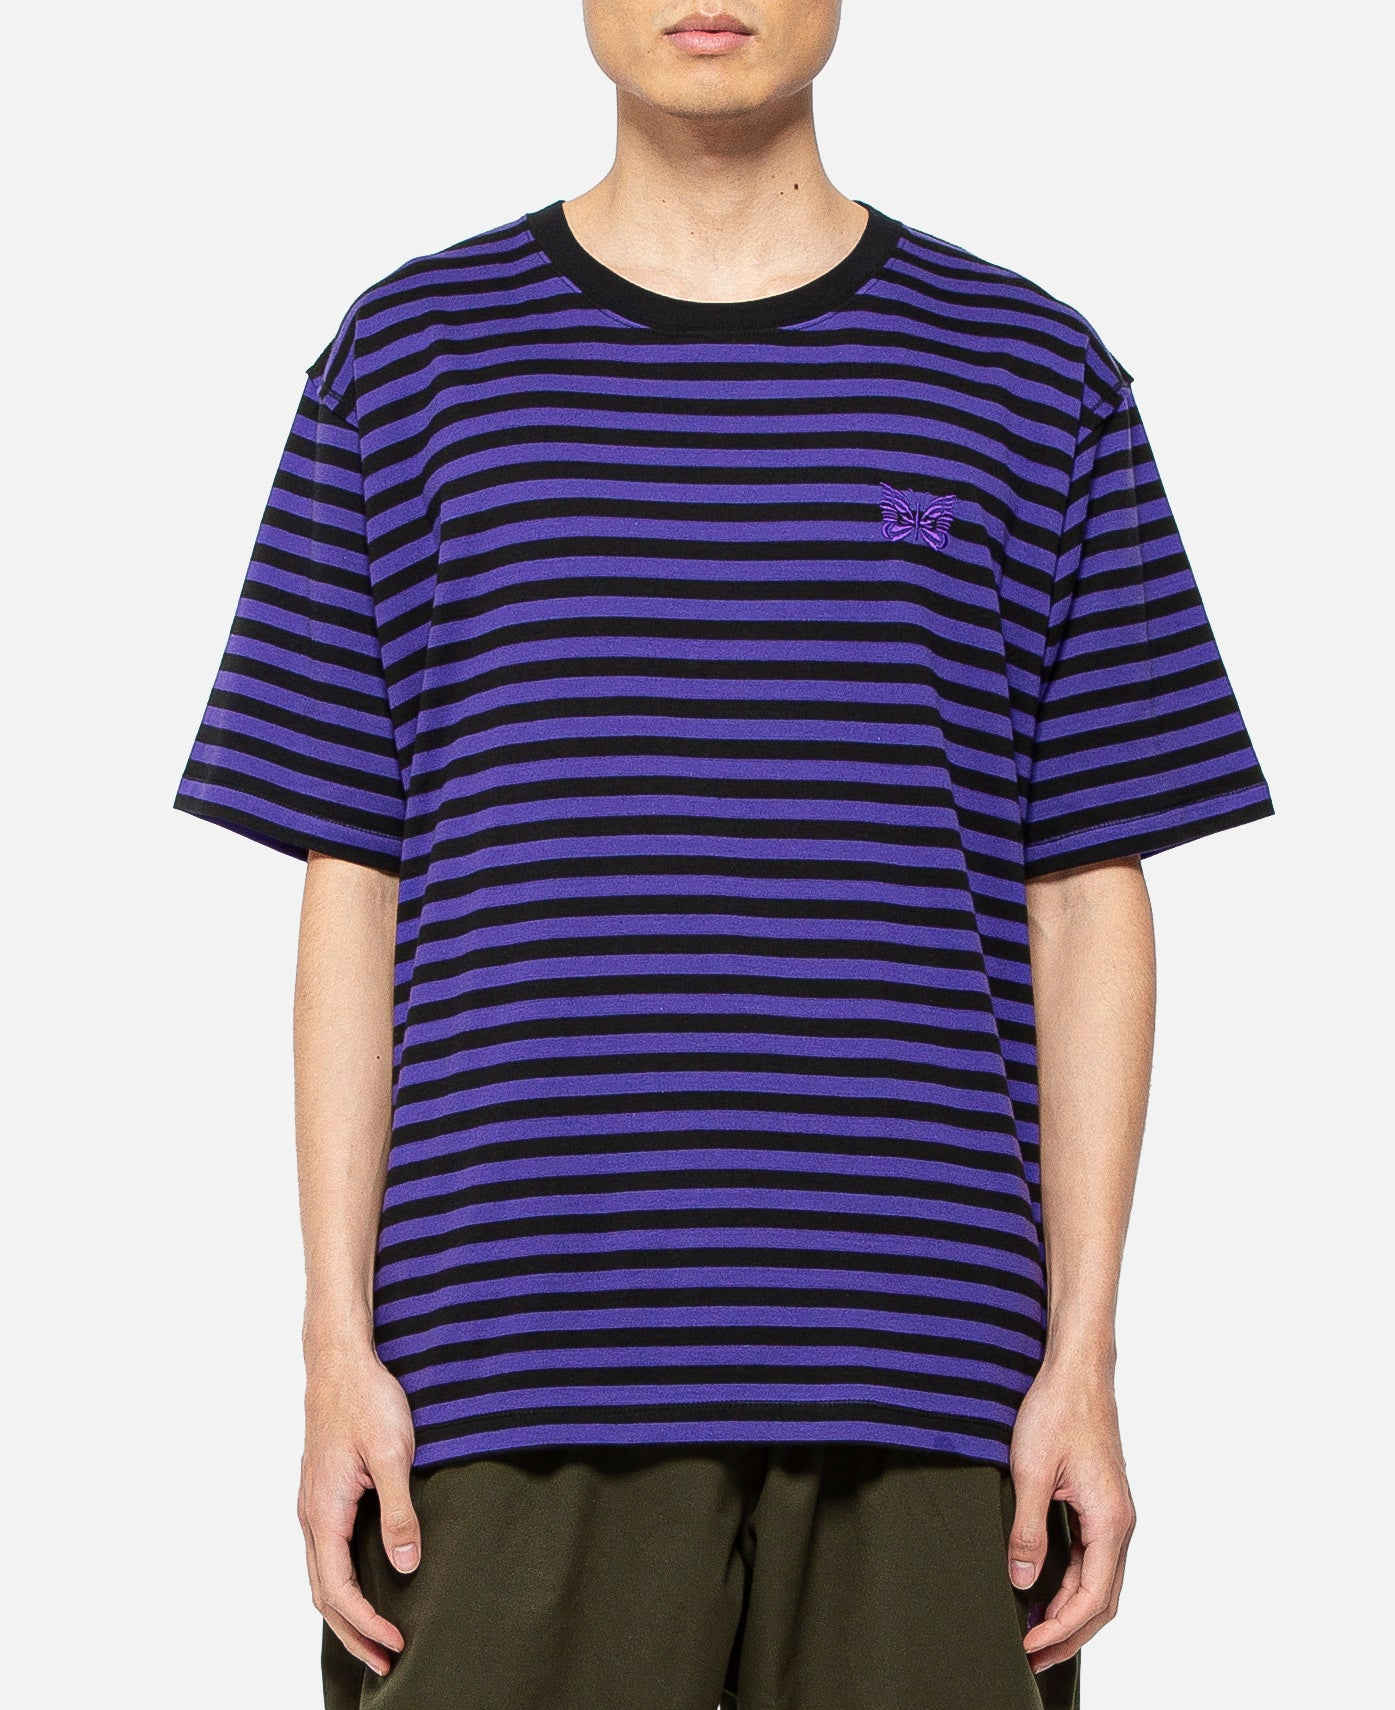 S/S Papillon Emb. T-Shirt (Purple)